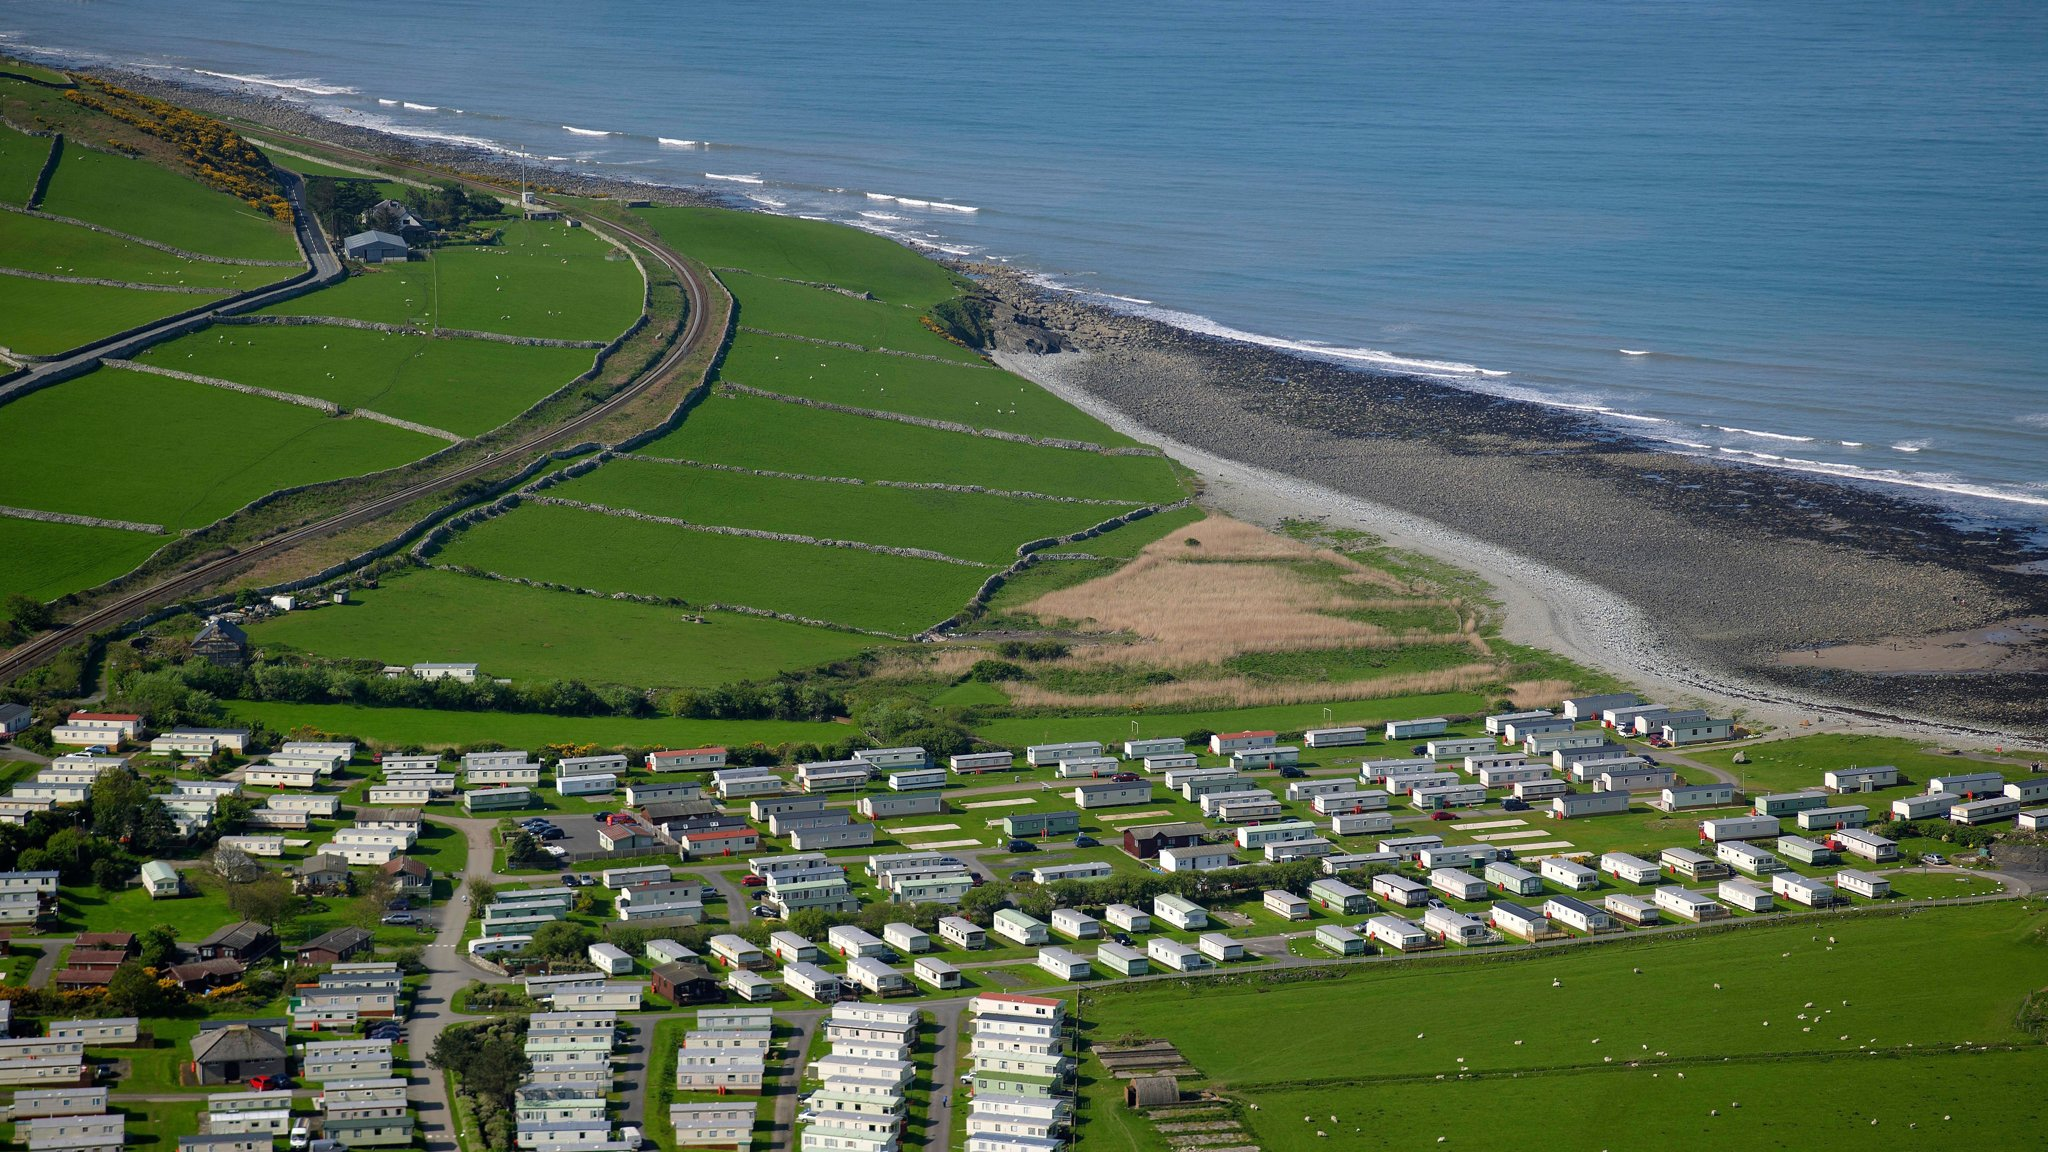 Caravan parks snapped up as Brexit fuels demand for UK breaks